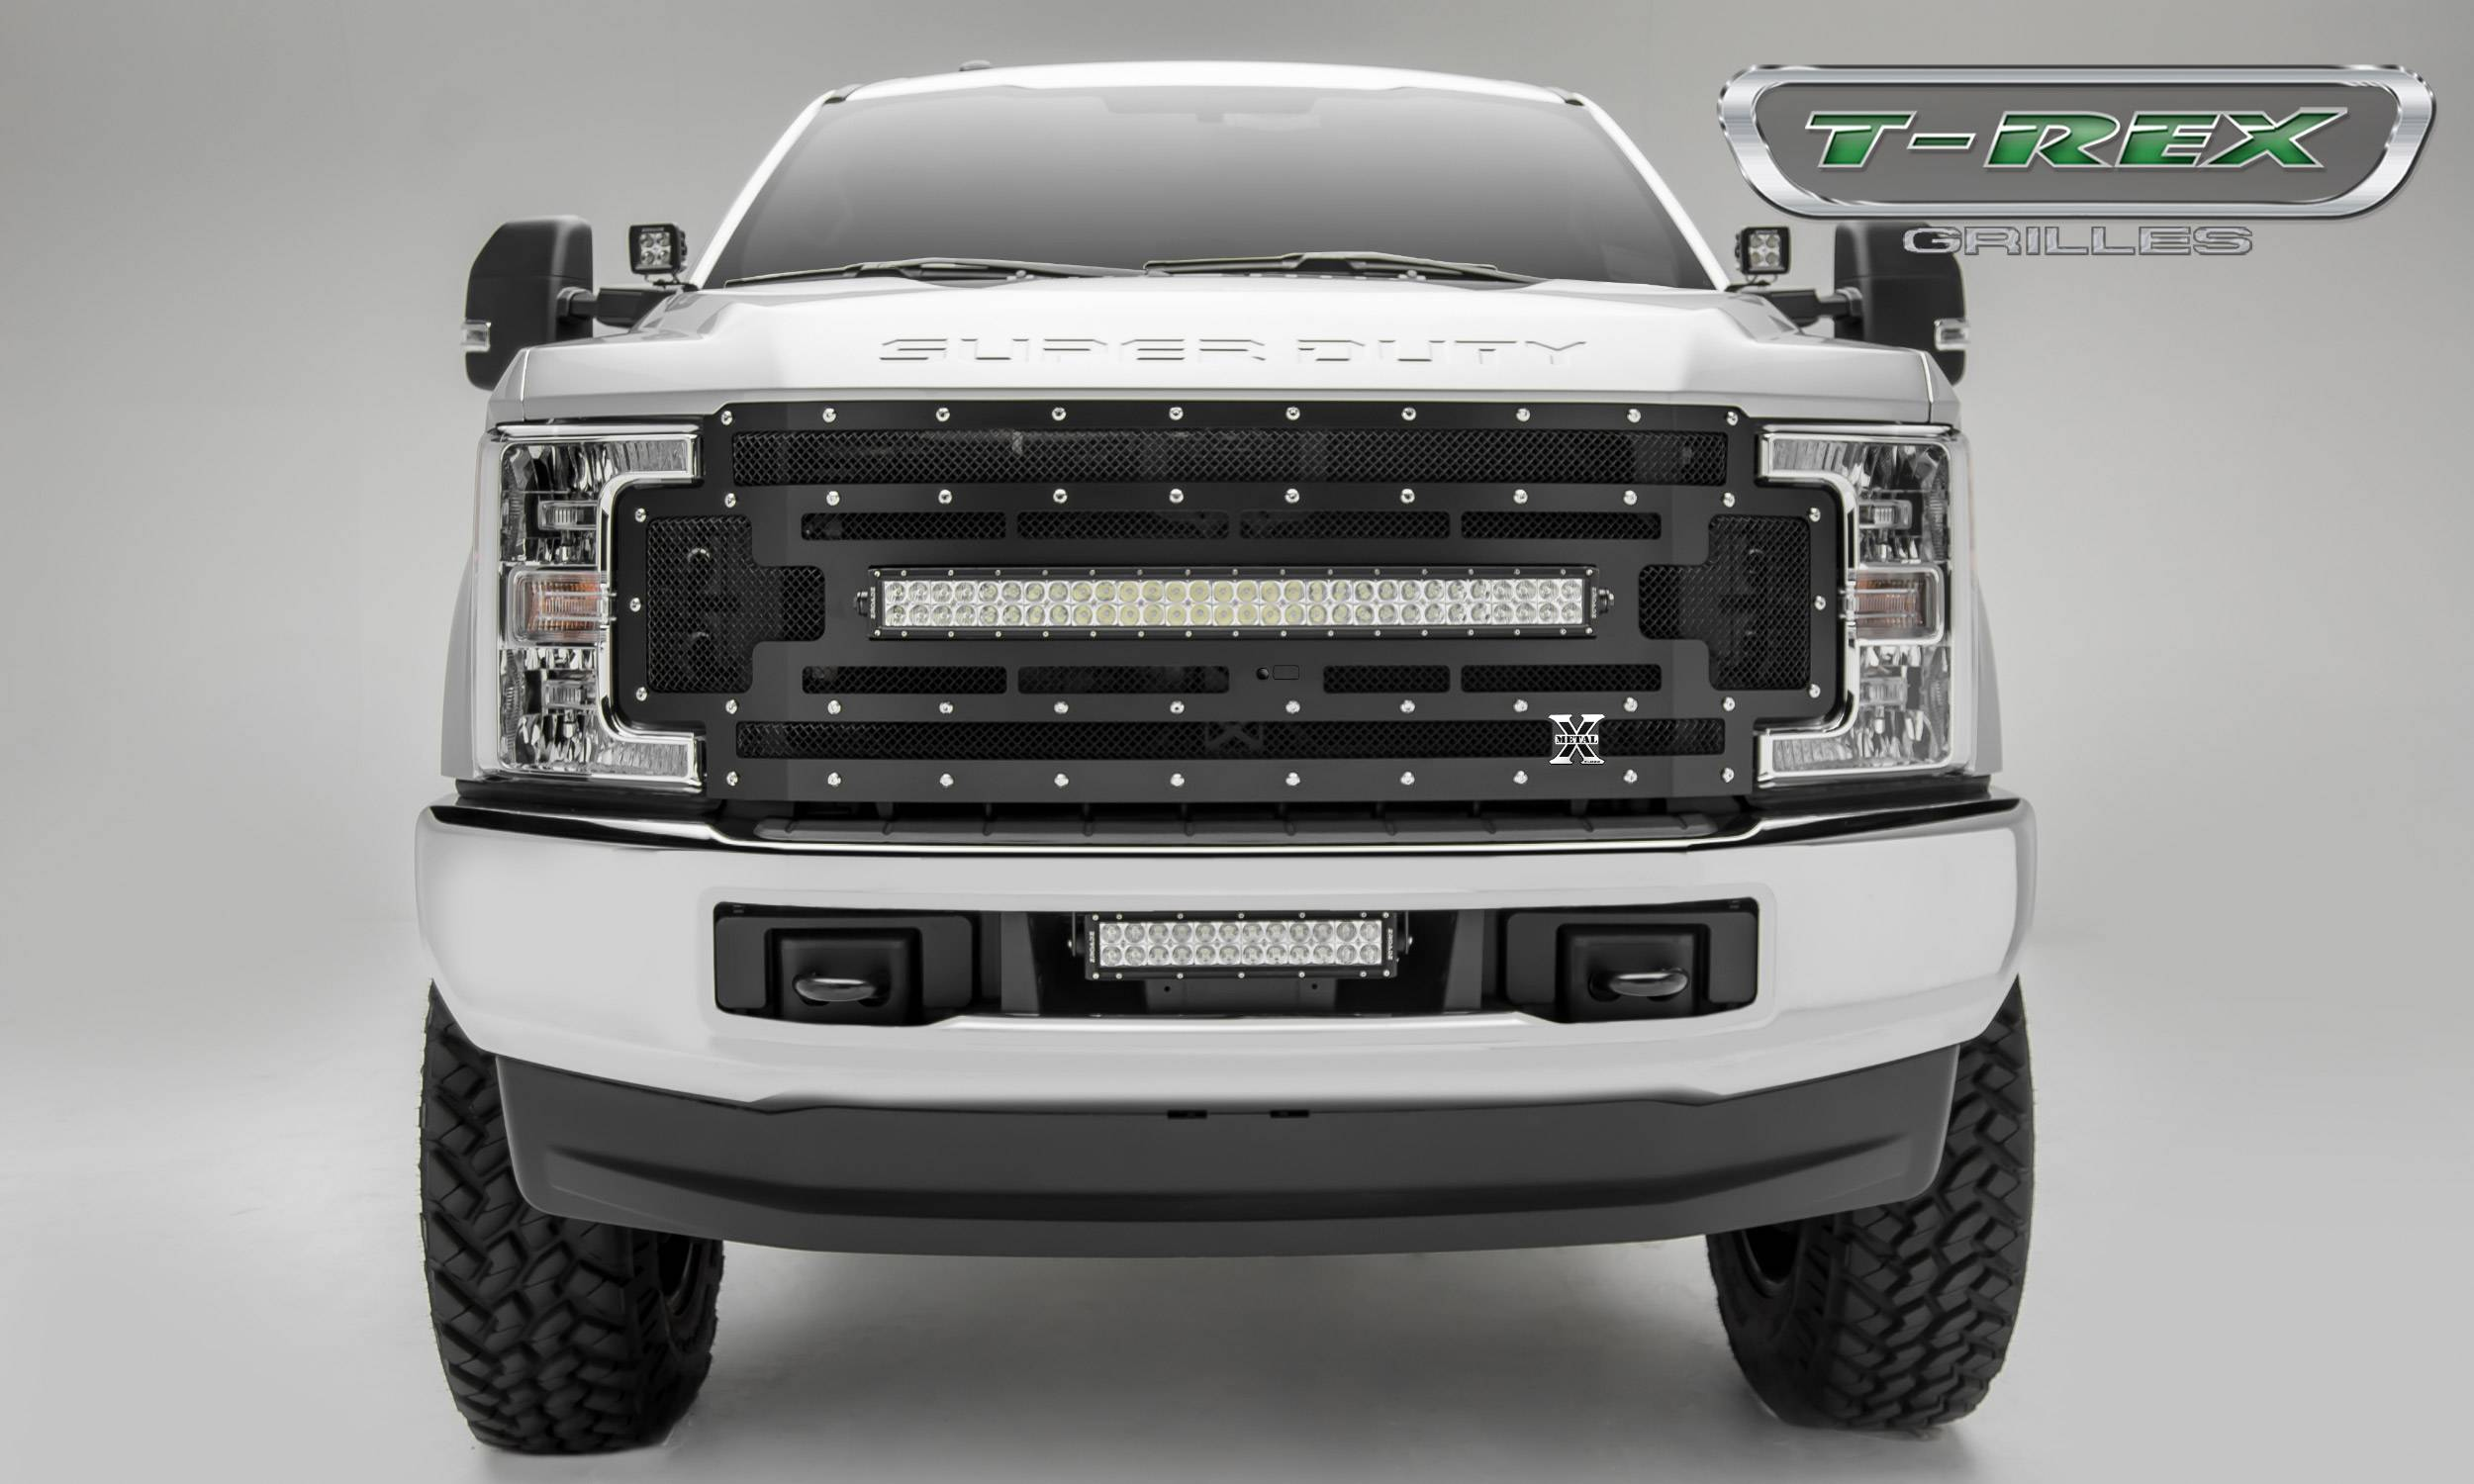 Torch series grille options for the 2017 ford super duty